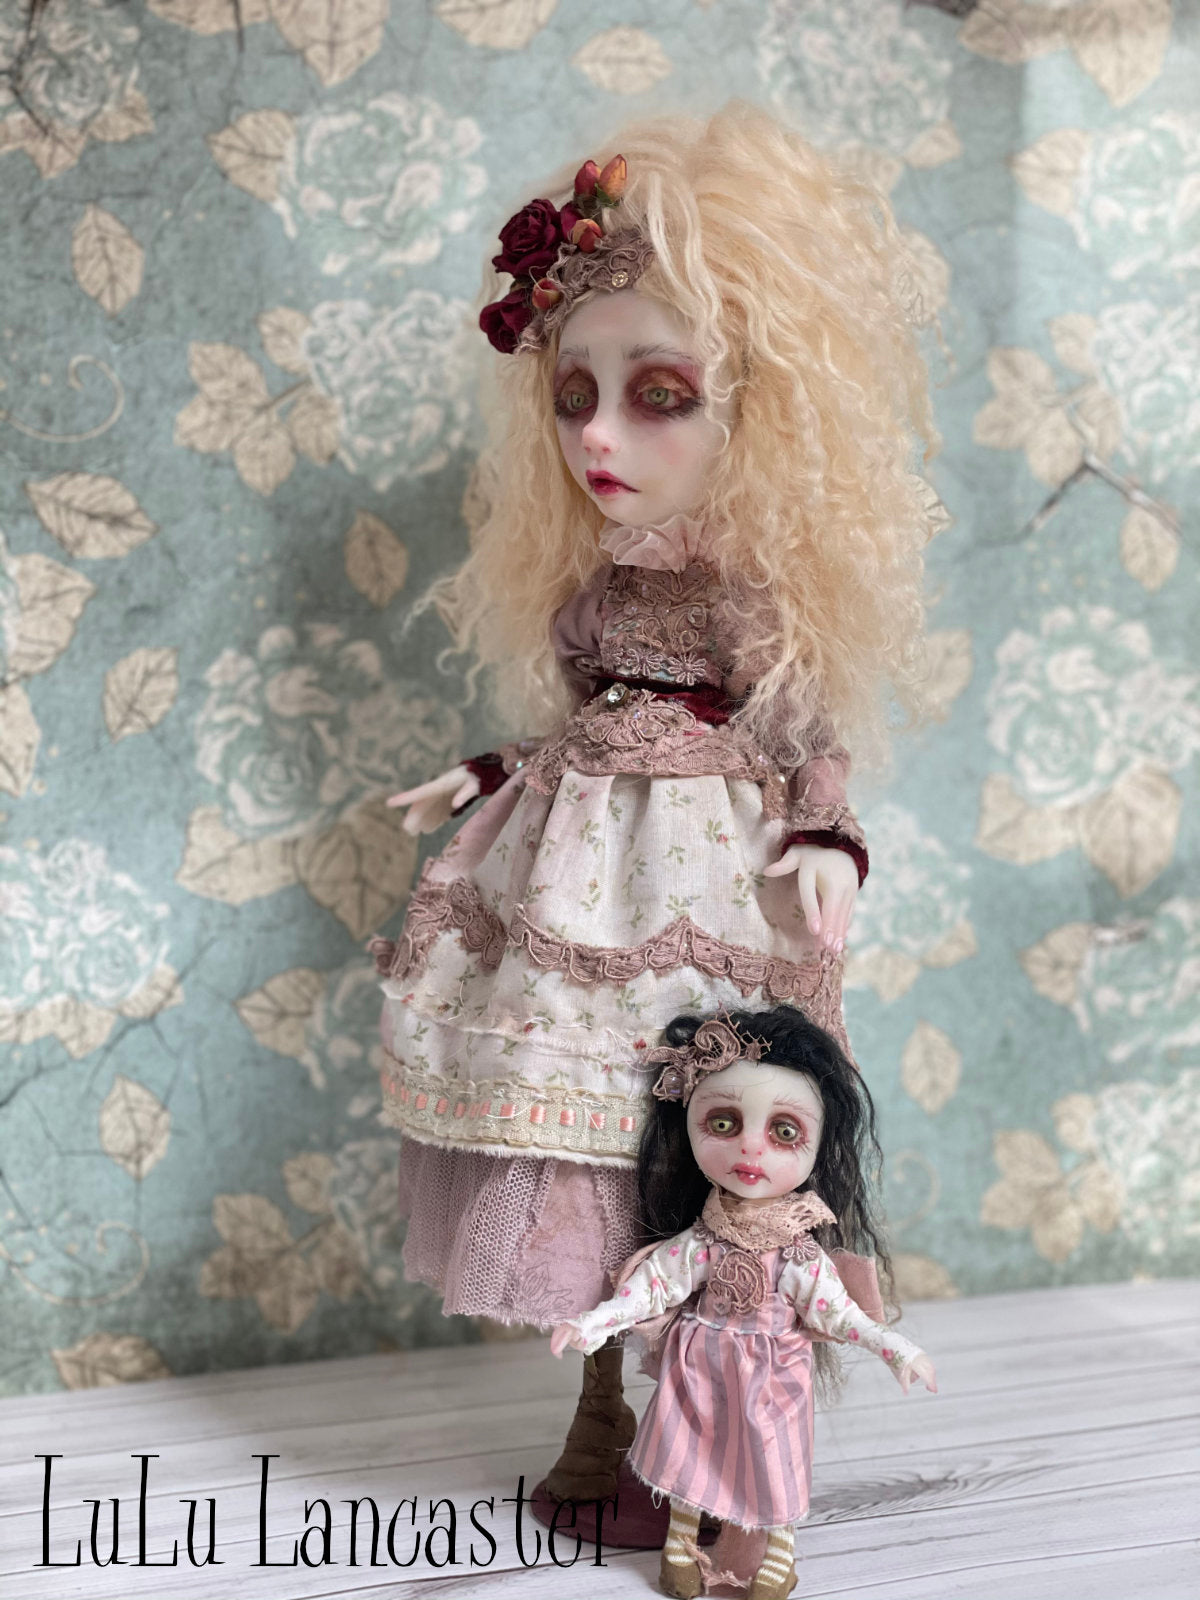 Truly and tiny Topper Victorian Original LuLu Lancaster Art Doll